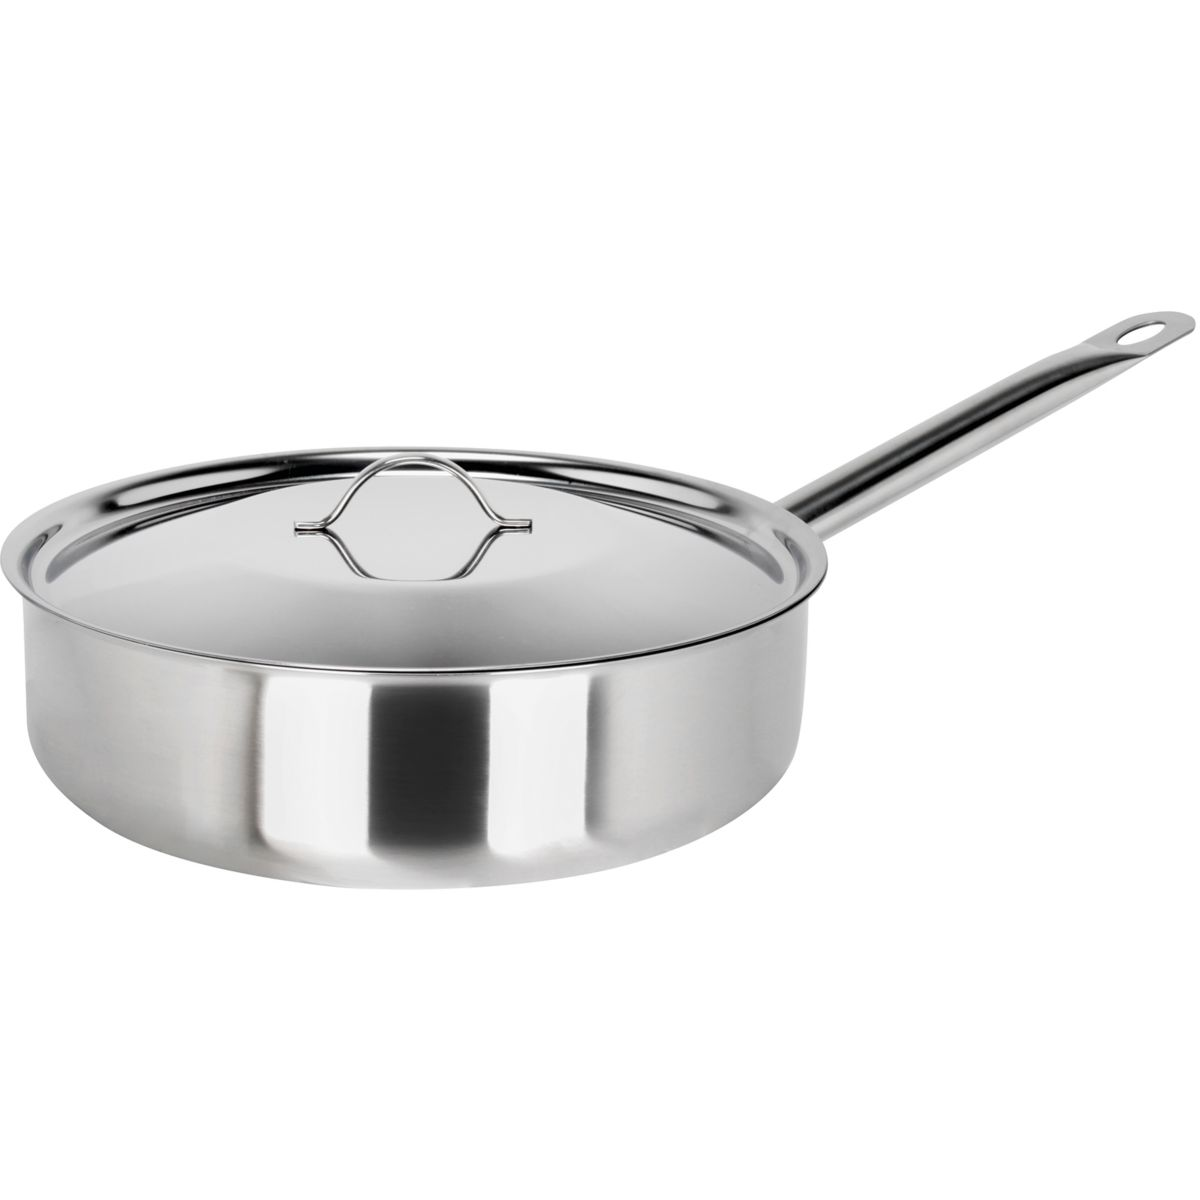 Sauteuse SITRAM Inox gamme professionell